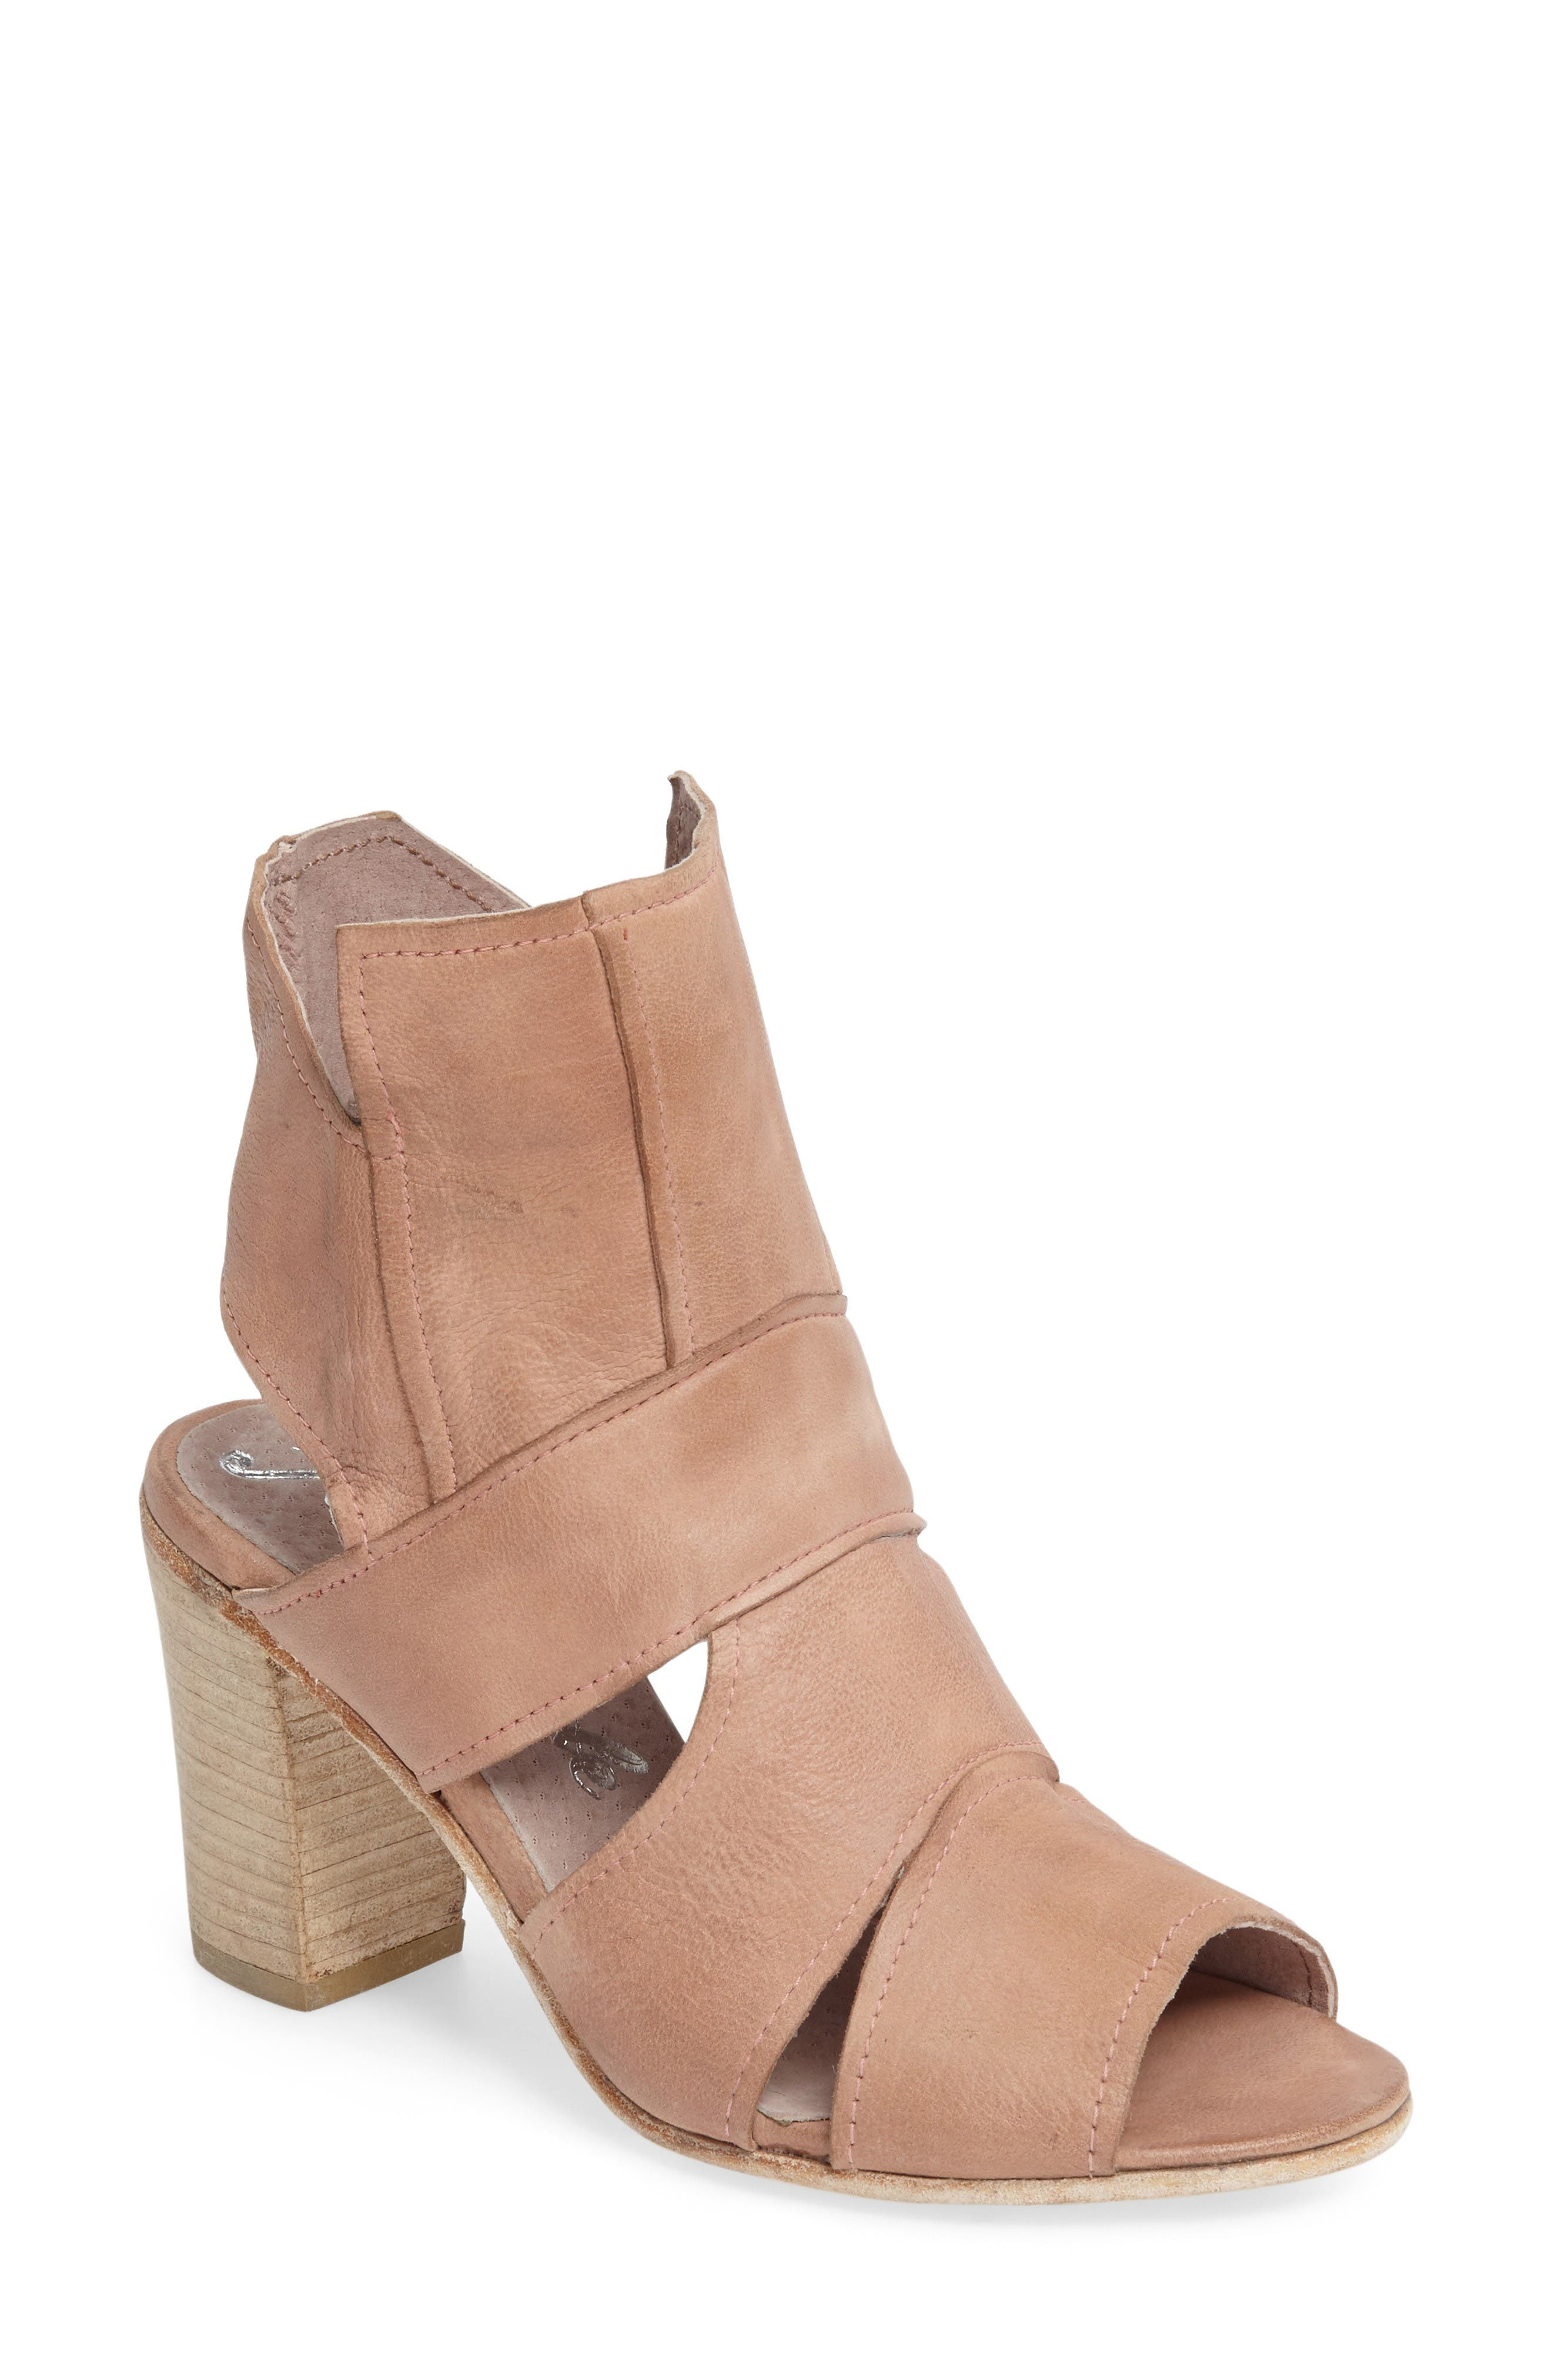 Free People Effie Block Heel Sandal (Women)